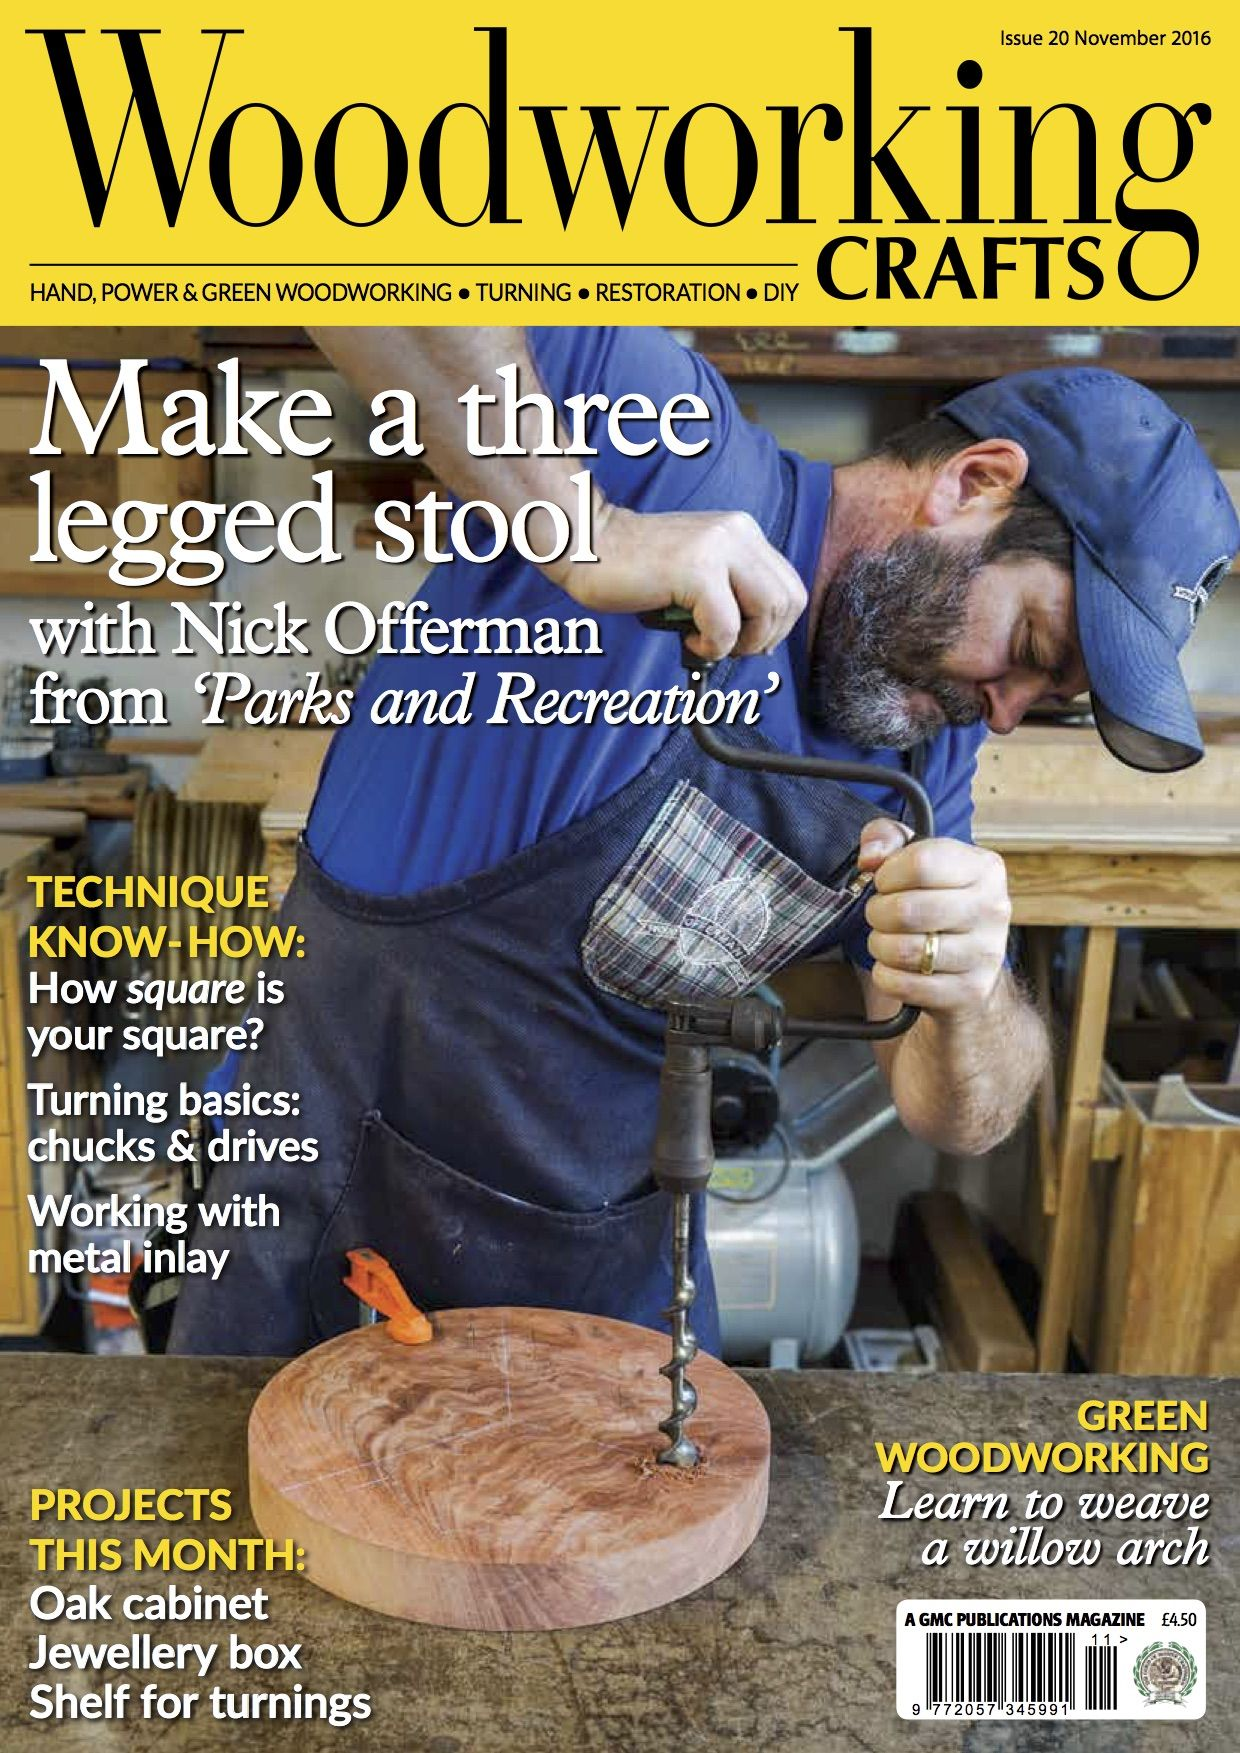 And Here It Is Issue 20 Of Woodworking Crafts On Sale Now At Your